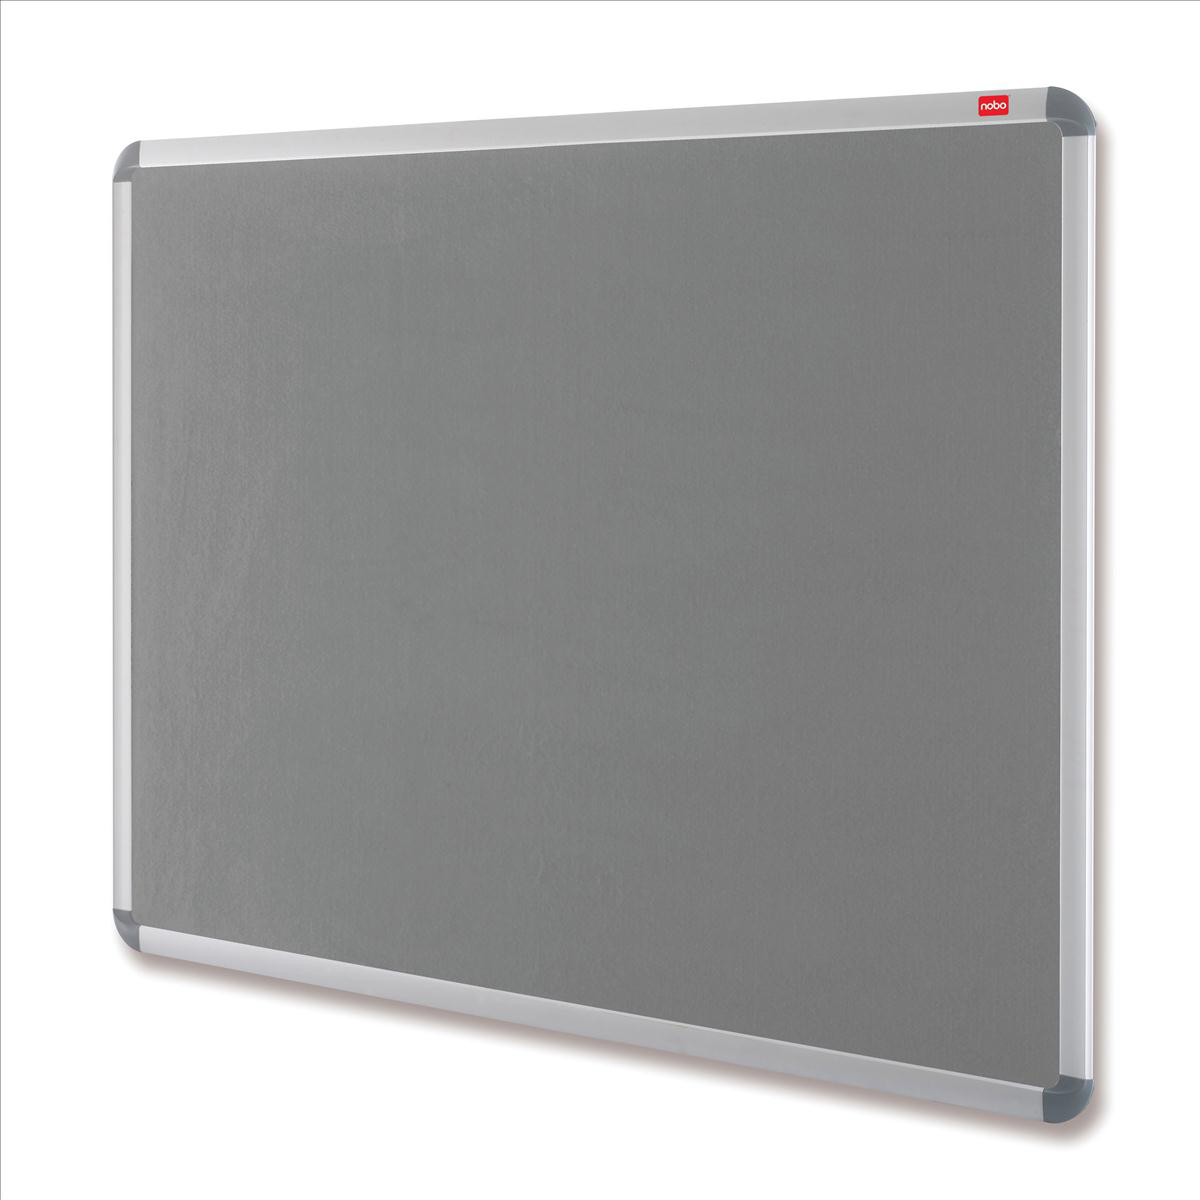 Image for **Nobo EuroPlus Felt Noticeboard with Fixings and Aluminium Frame W1500xH1000mm Grey Ref 30234146